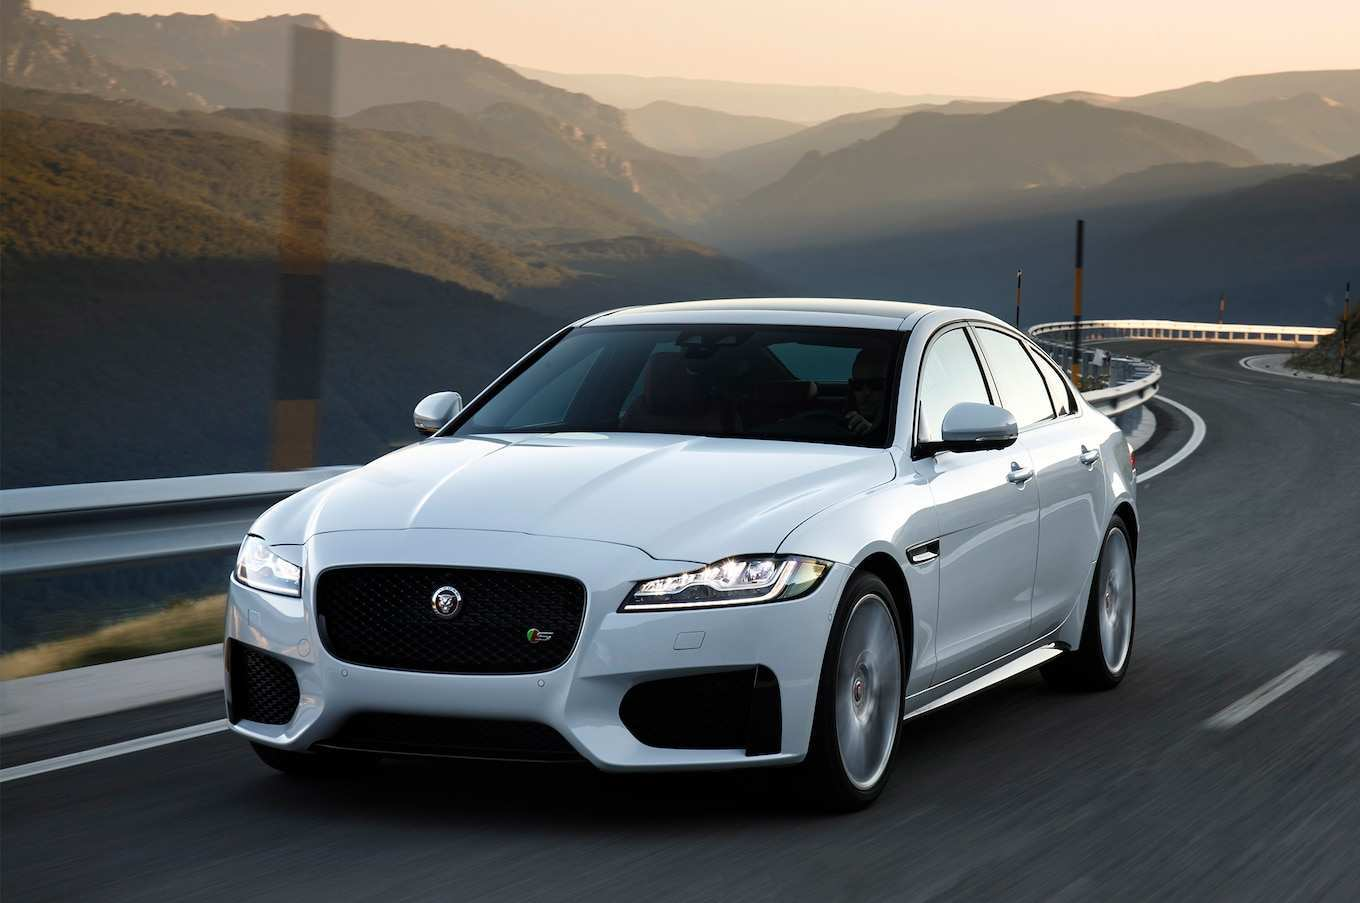 49 New 2019 Jaguar Sedan Wallpaper